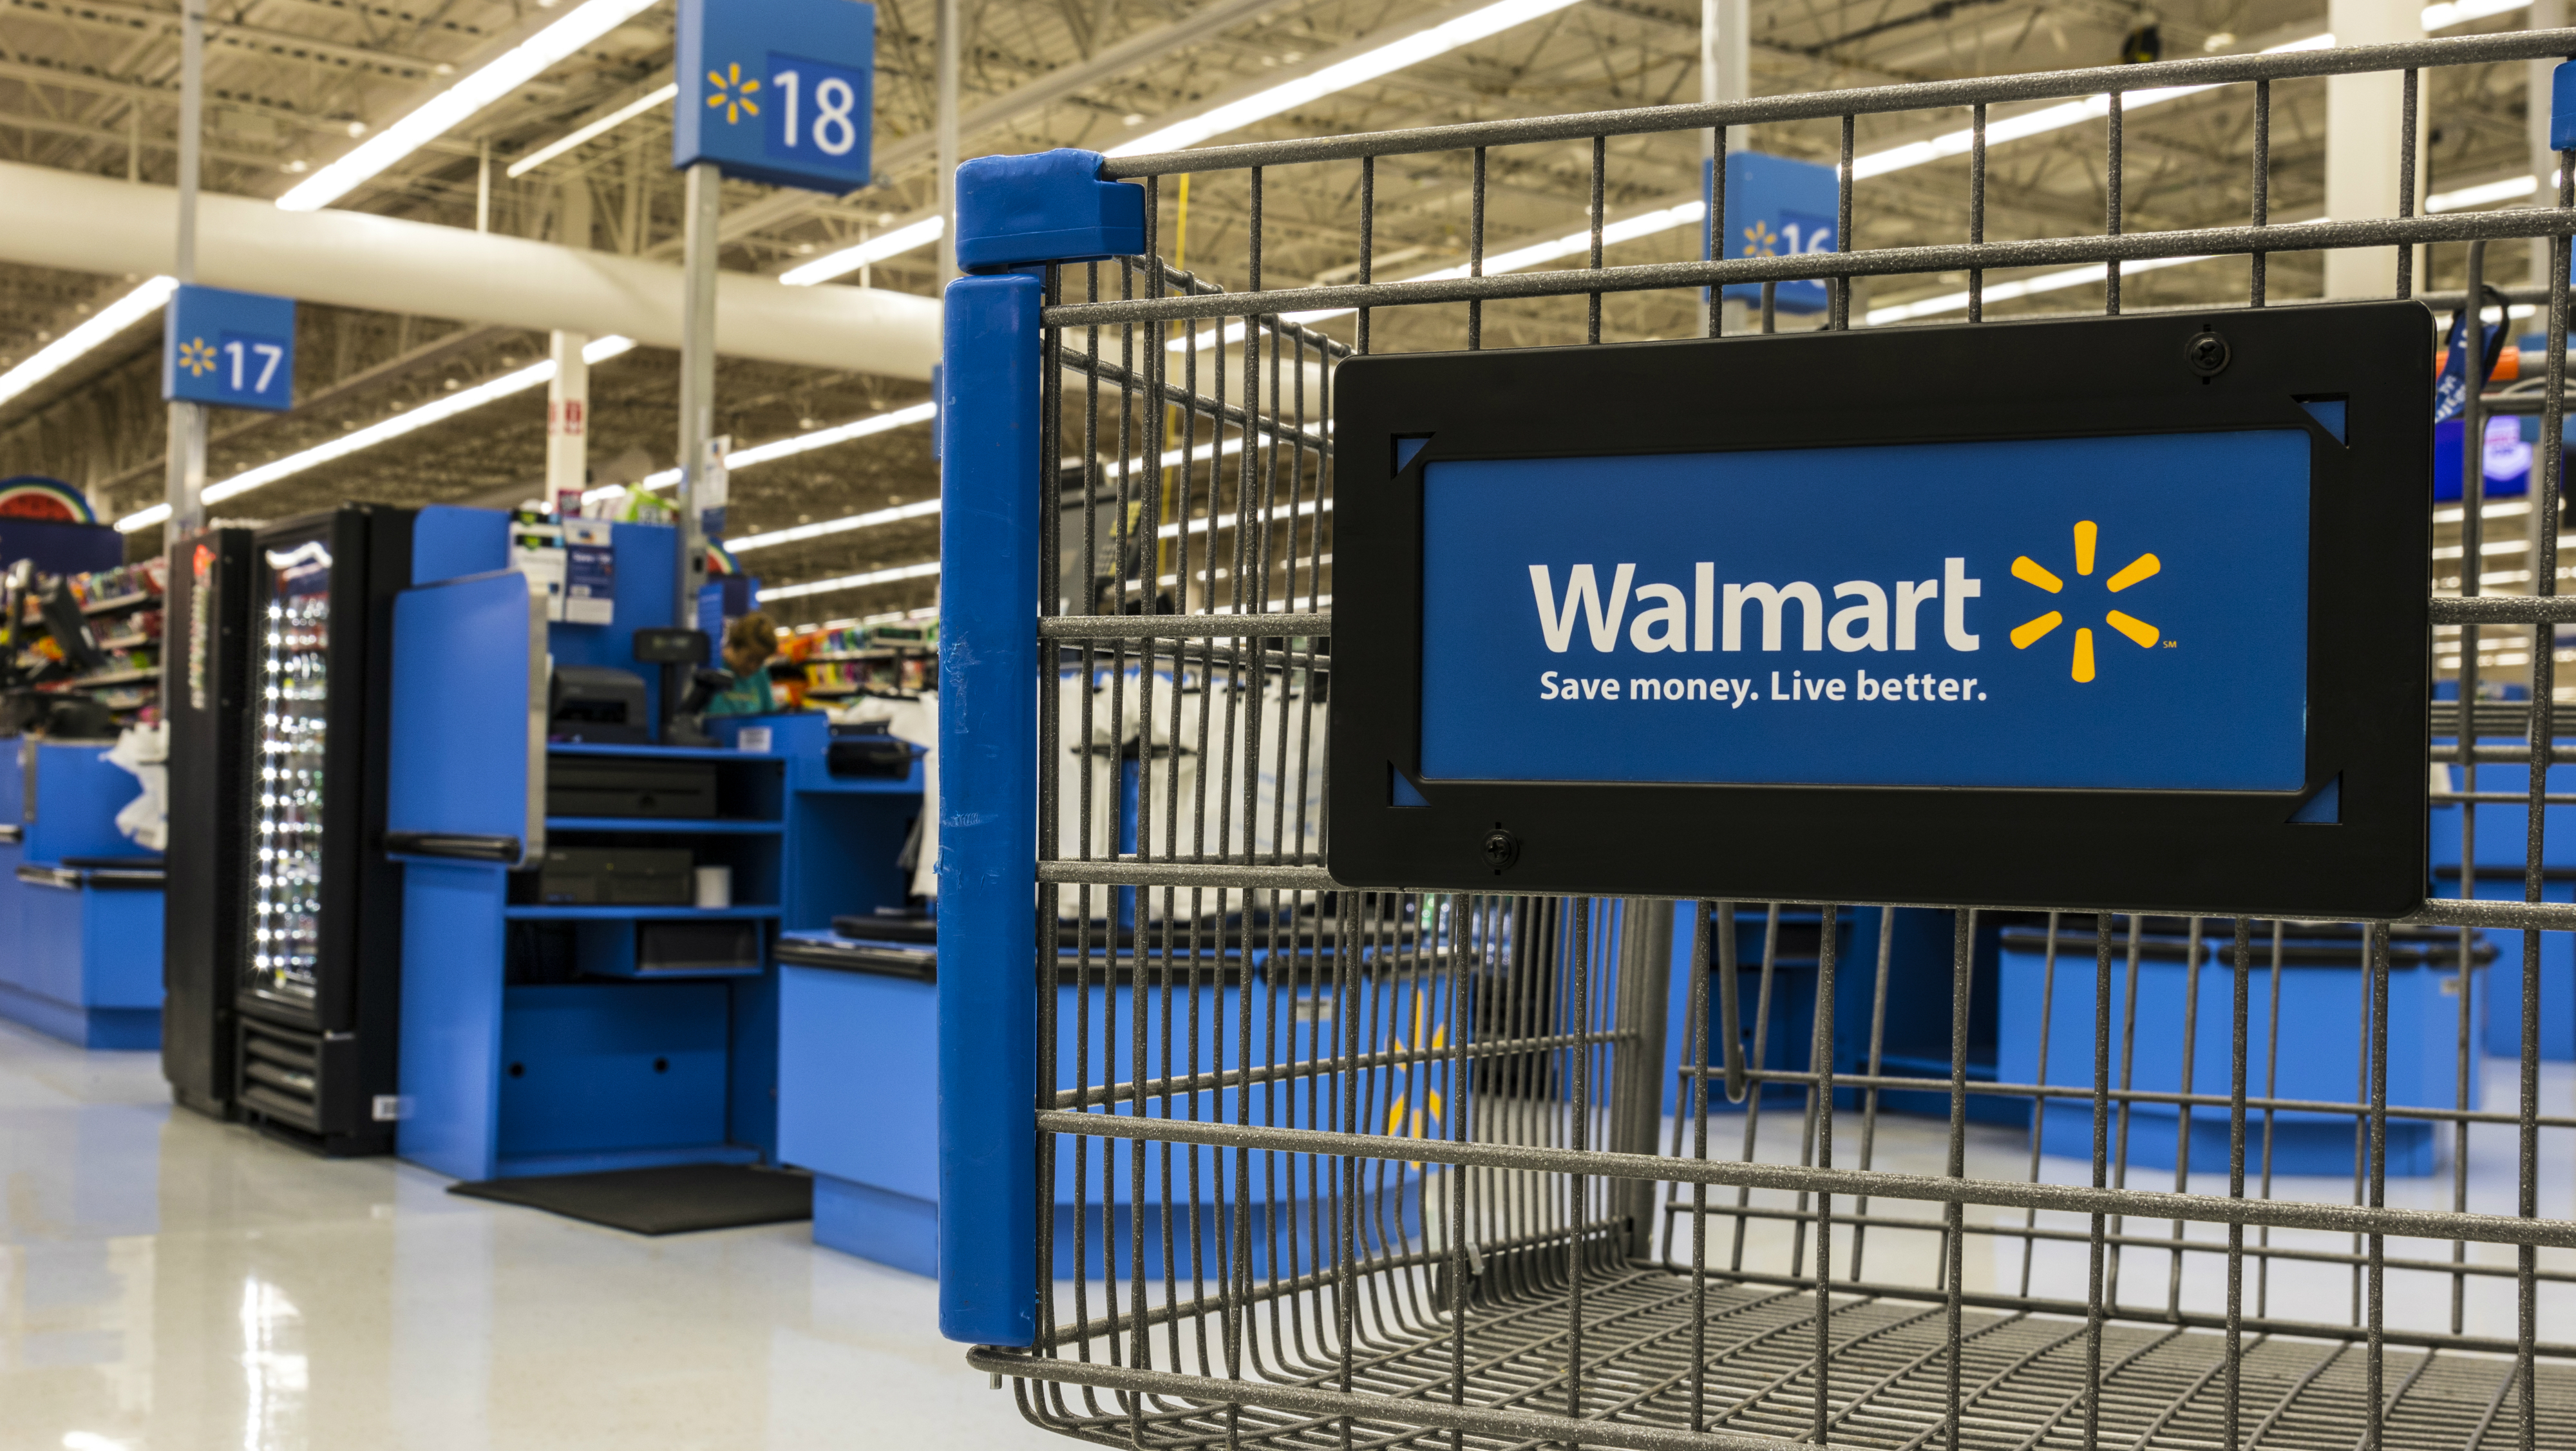 The Best Walmart Sales And Deals In October 2019 Techradar